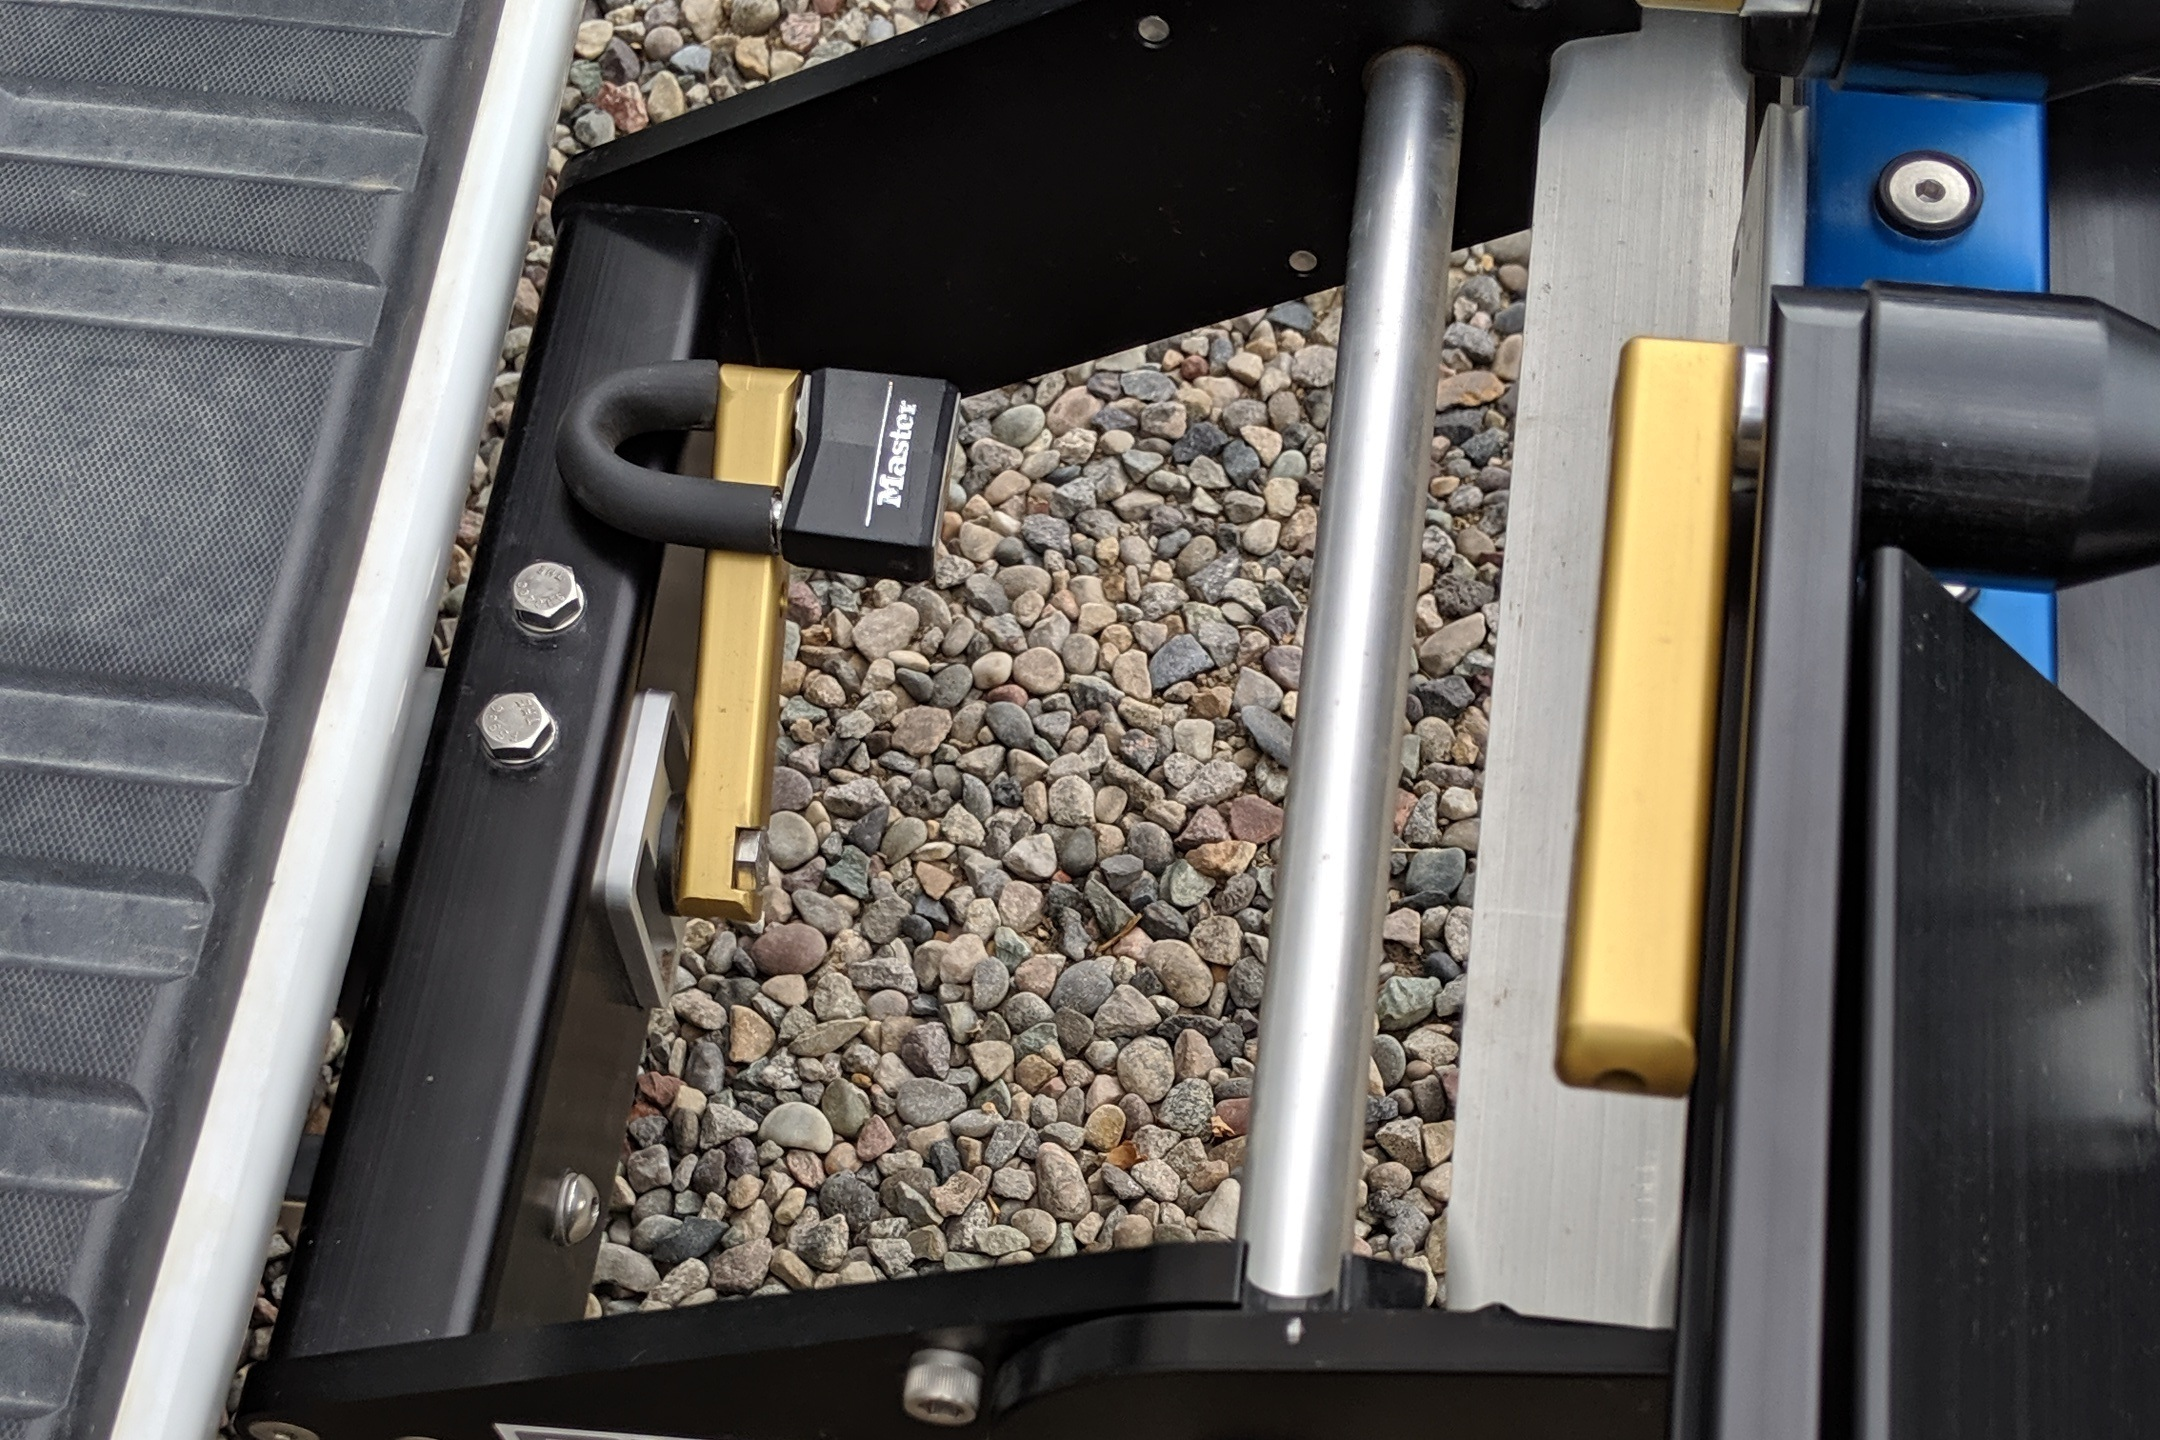 Quik Rack Mach 2  - Anti-wobble locking system can be locked into place to prevent rack theft - Picture #13